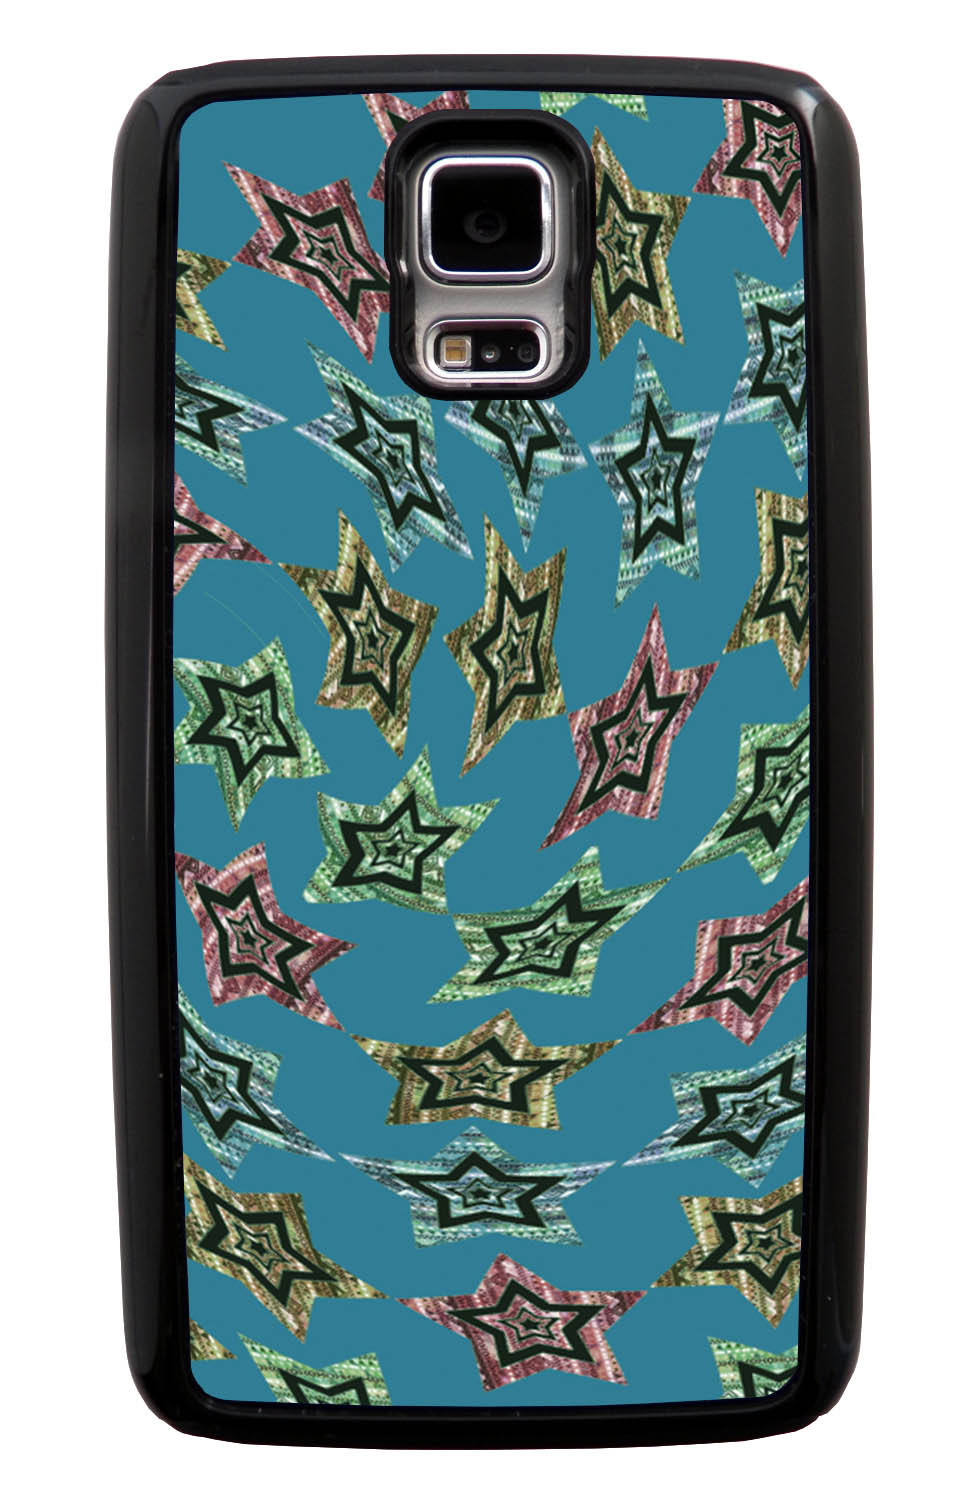 Samsung Galaxy S5 / SV Aztec Case - Whirlwind Stars - Geometric - Black Tough Hybrid Case